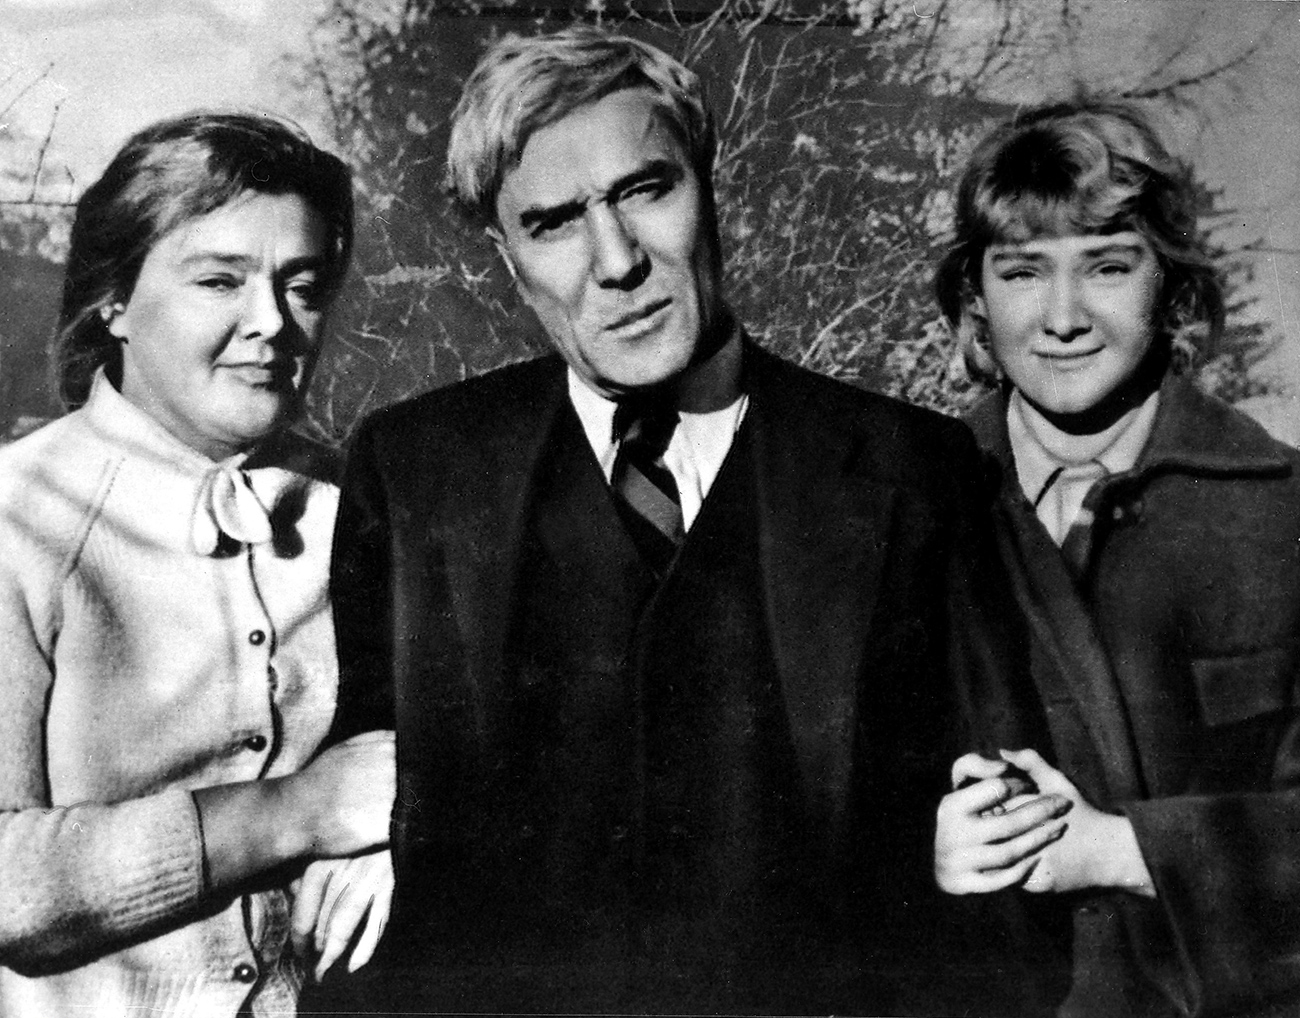 Pasternak Boris Russian writer. Photographed with his muse and life companion Olga Ivinskaya and their daughter Irina, late 1950s. / Photo: Getty Images